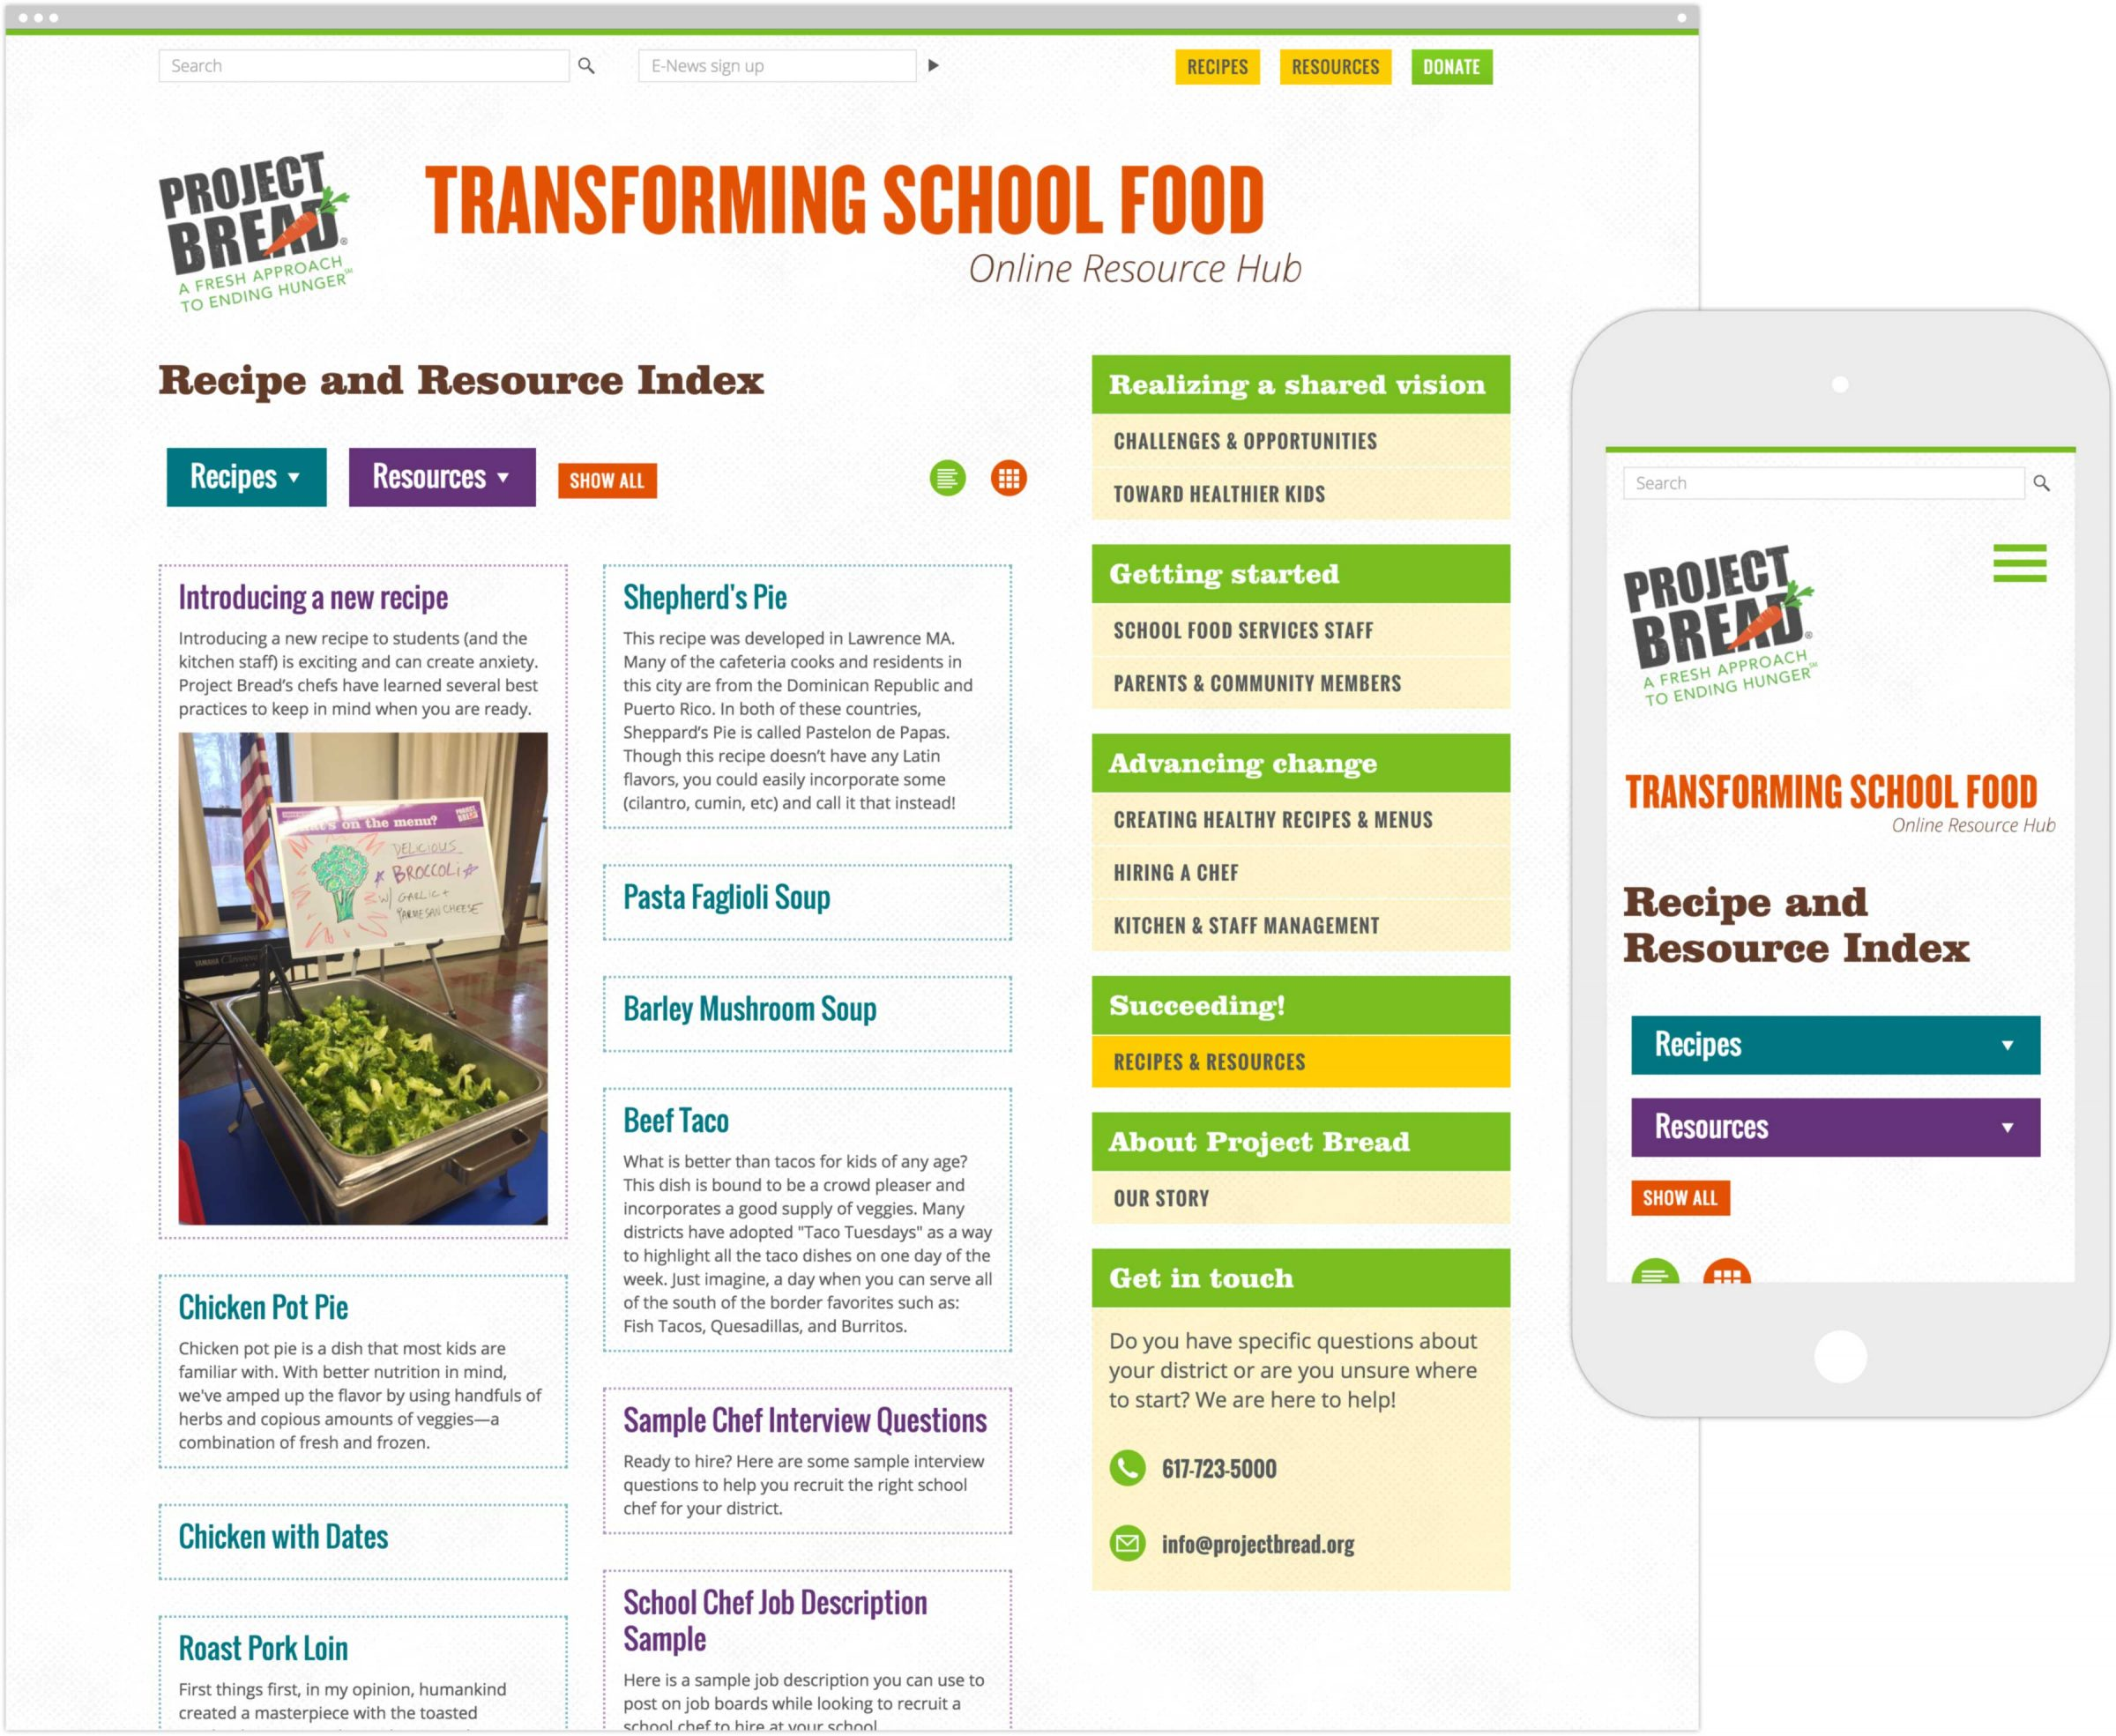 Transforming School Food Online Resource Hub on desktop and mobile device